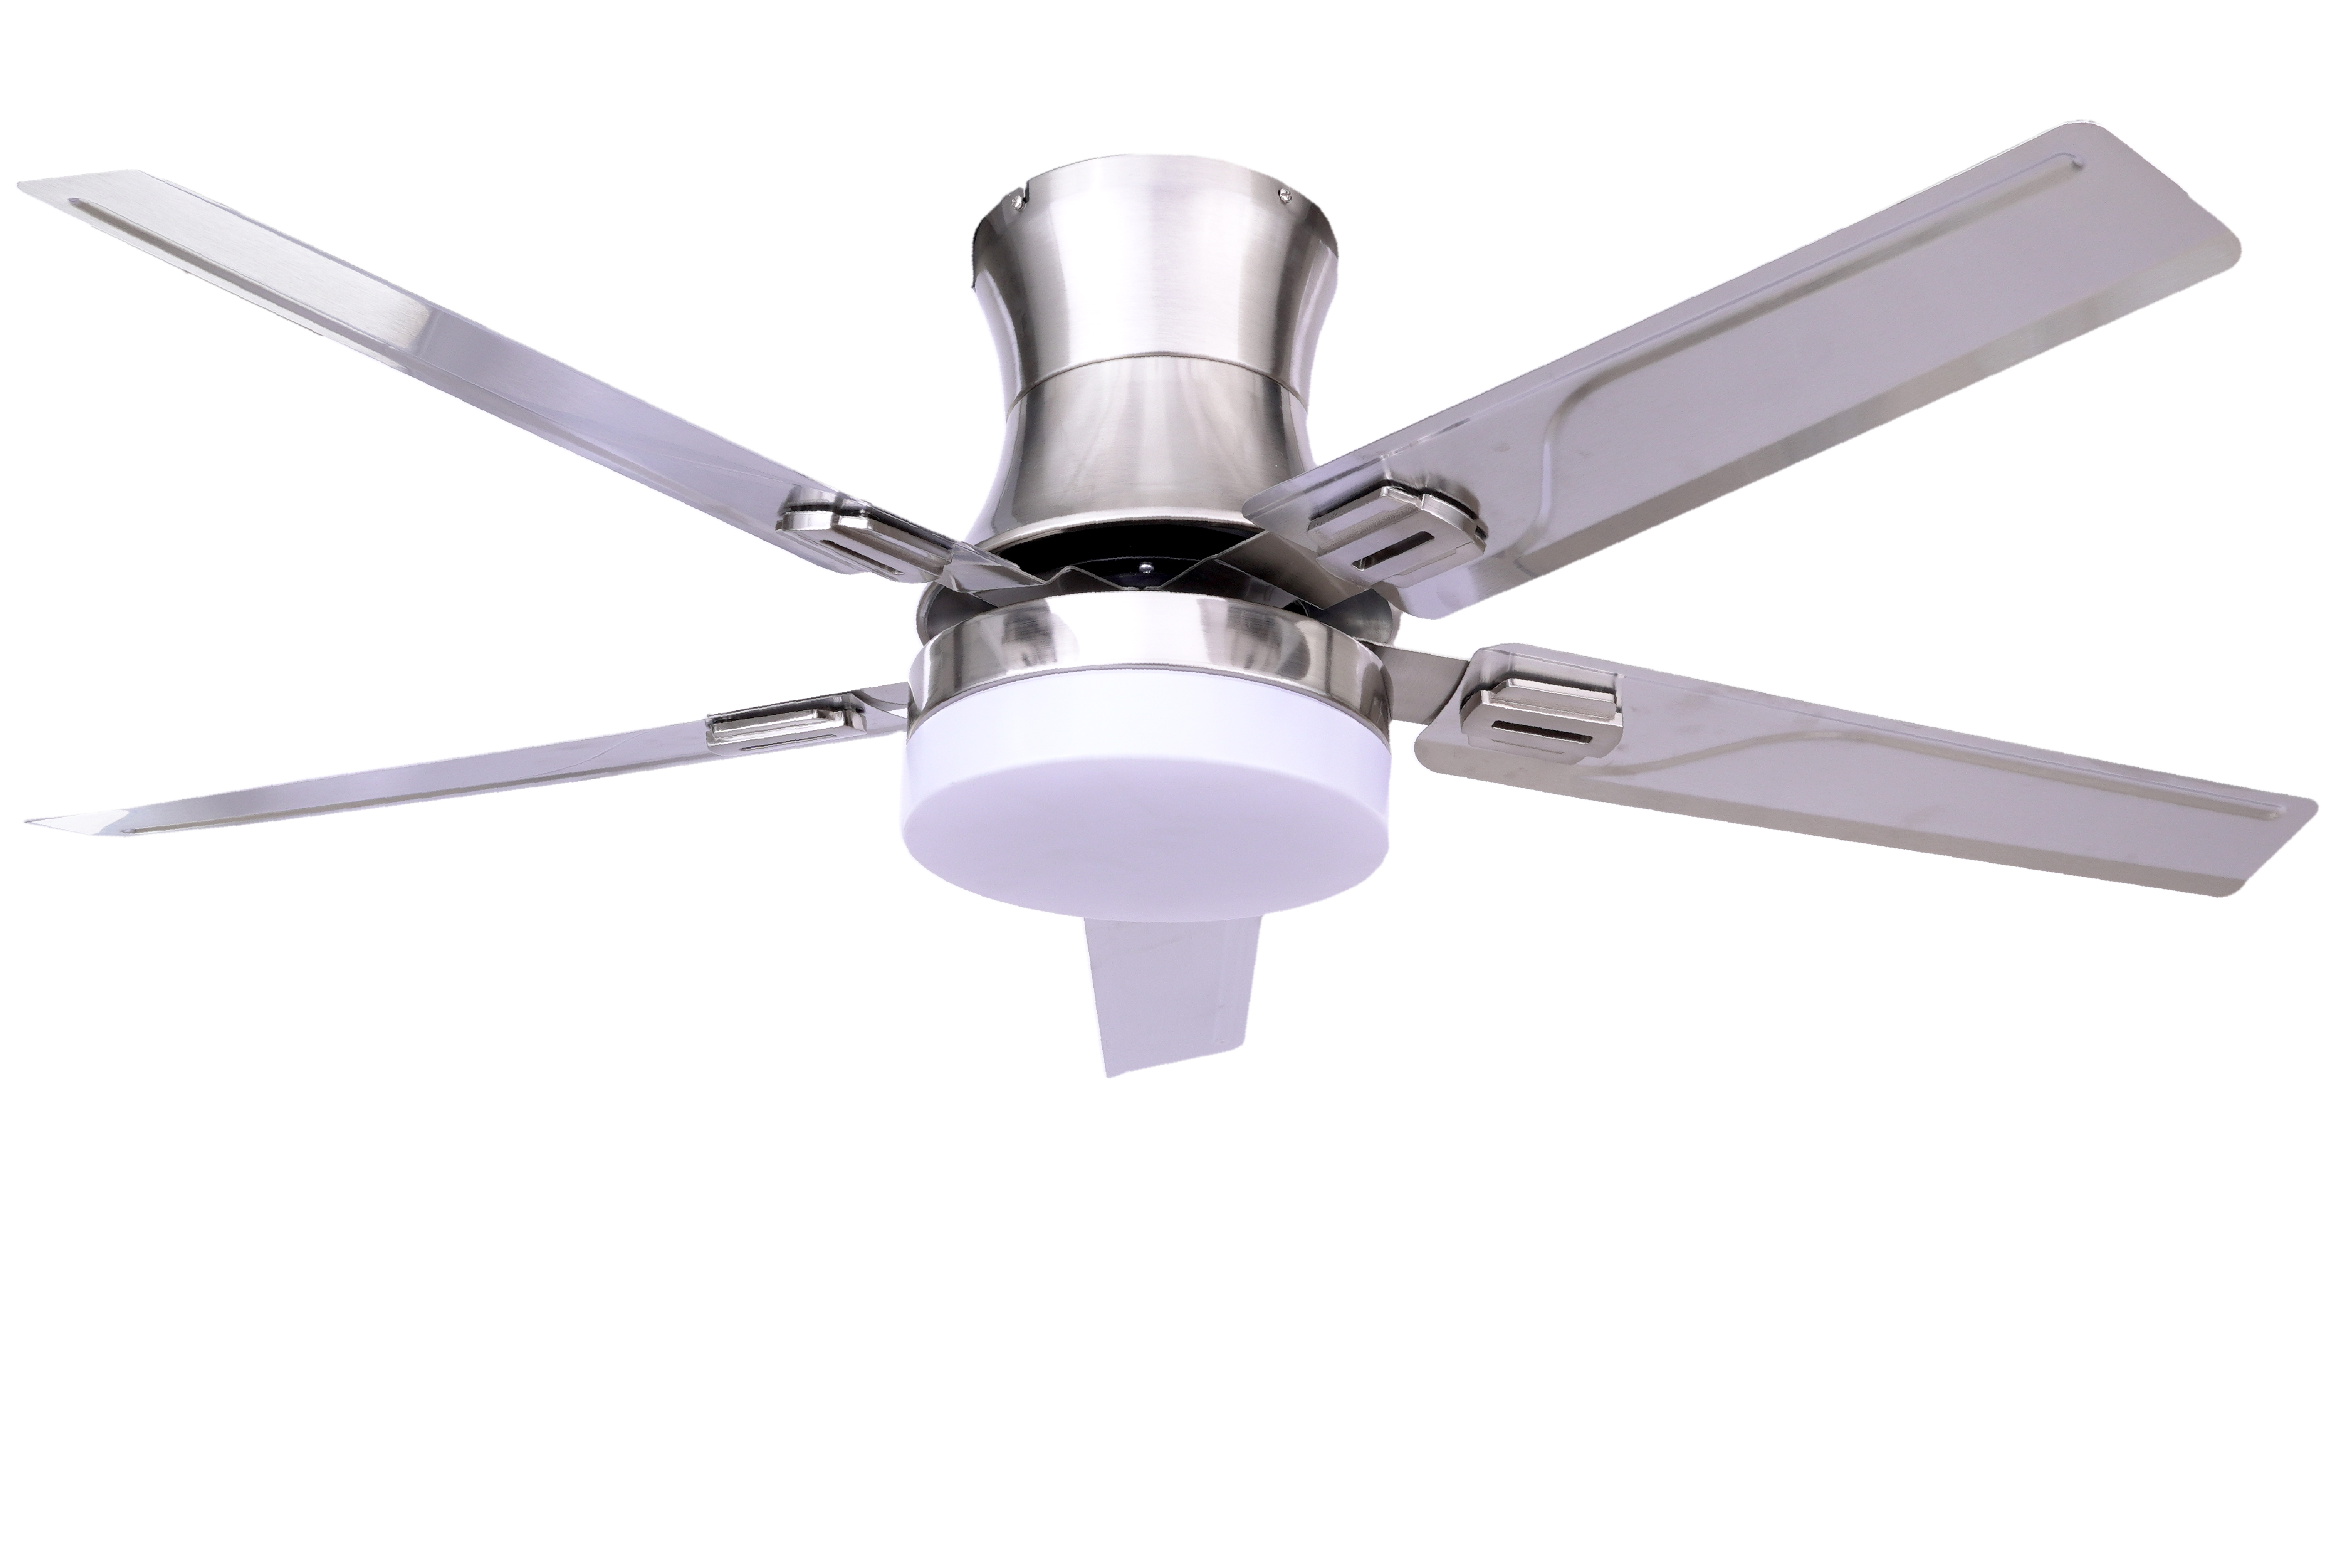 Hans Lighting Modern Ceiling Fan With 24w Led Light Remote Control Noiseless Ceiling Fan With 5 Pcs Iron Blades Hans Online Store Modern Led Fans Women S Bra